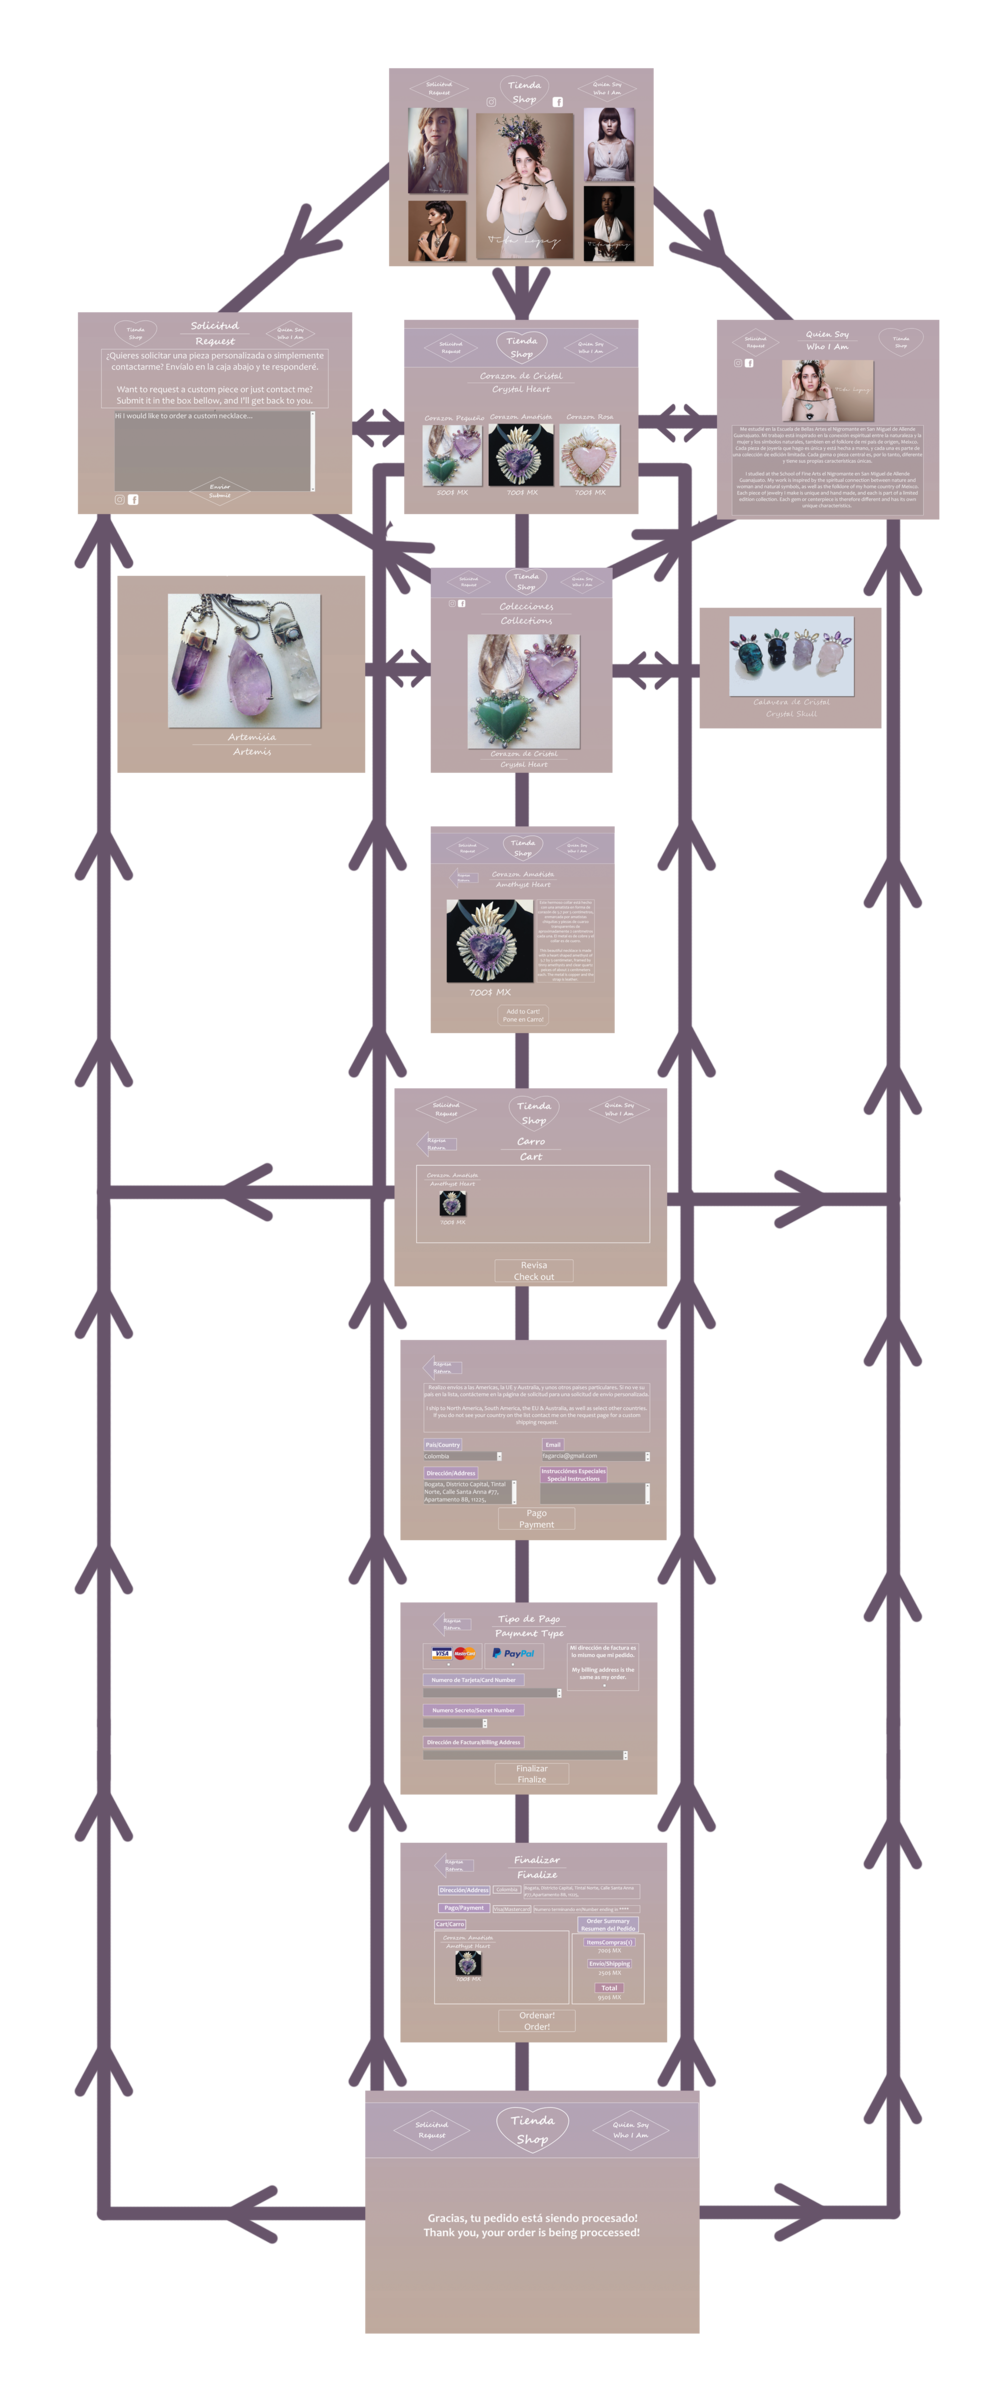 Here you can see a flowchart of the wireframe layout